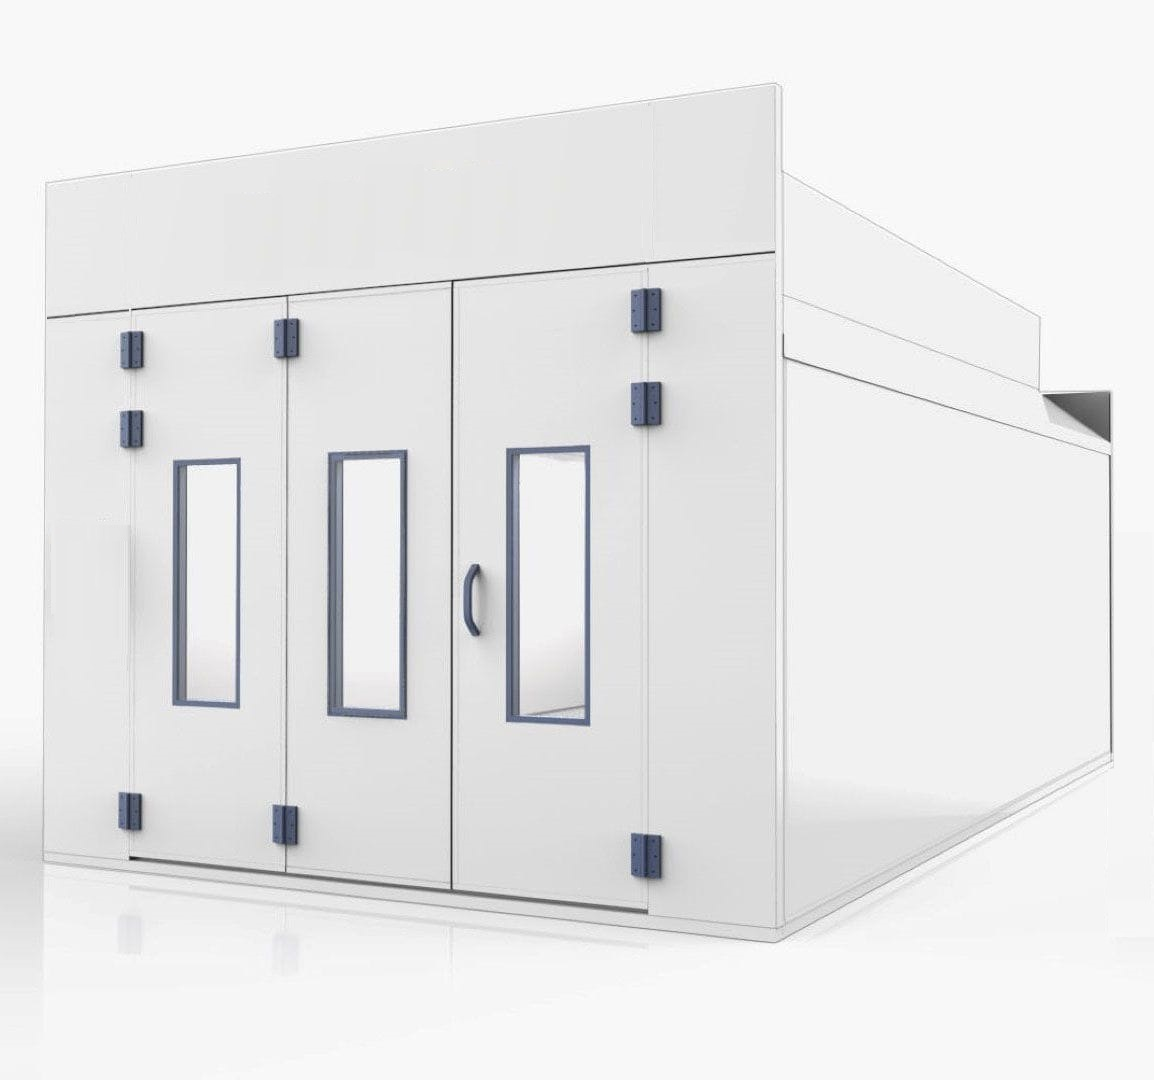 Enclosed spray booth for vehicles